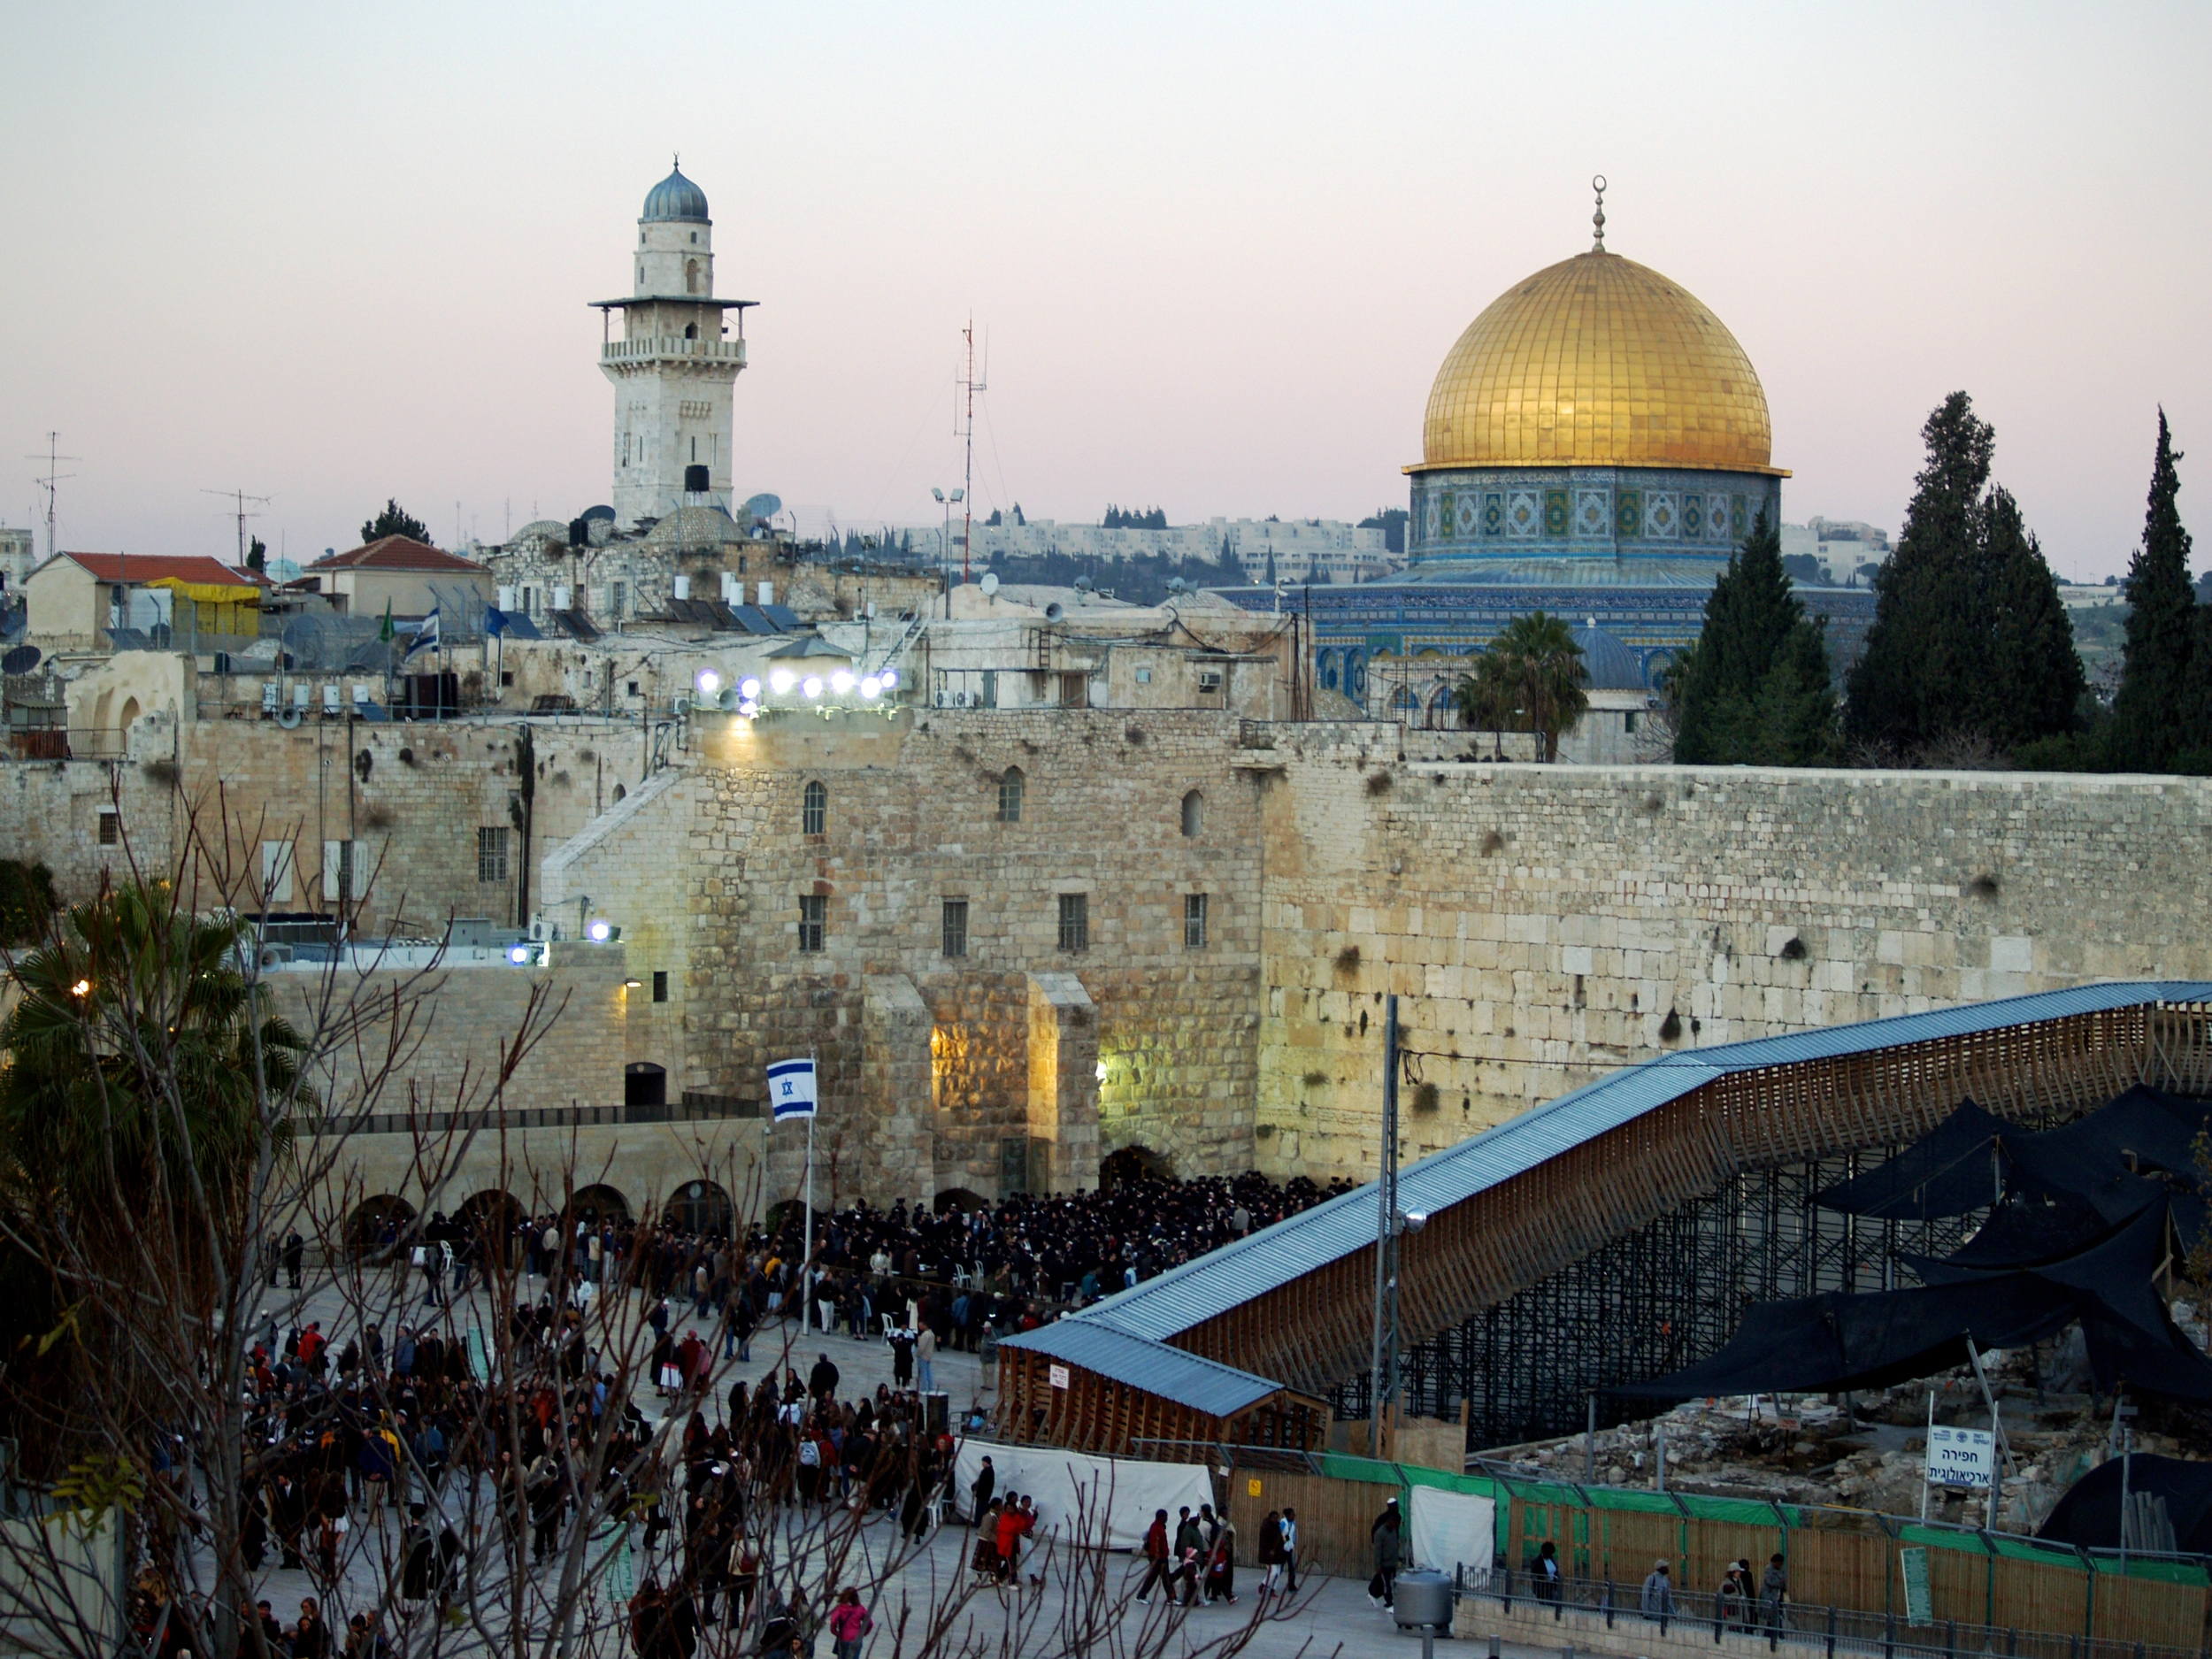 Temple_Mount_Western_Wall_on_Shabbat_by_David_Shankbone.jpg